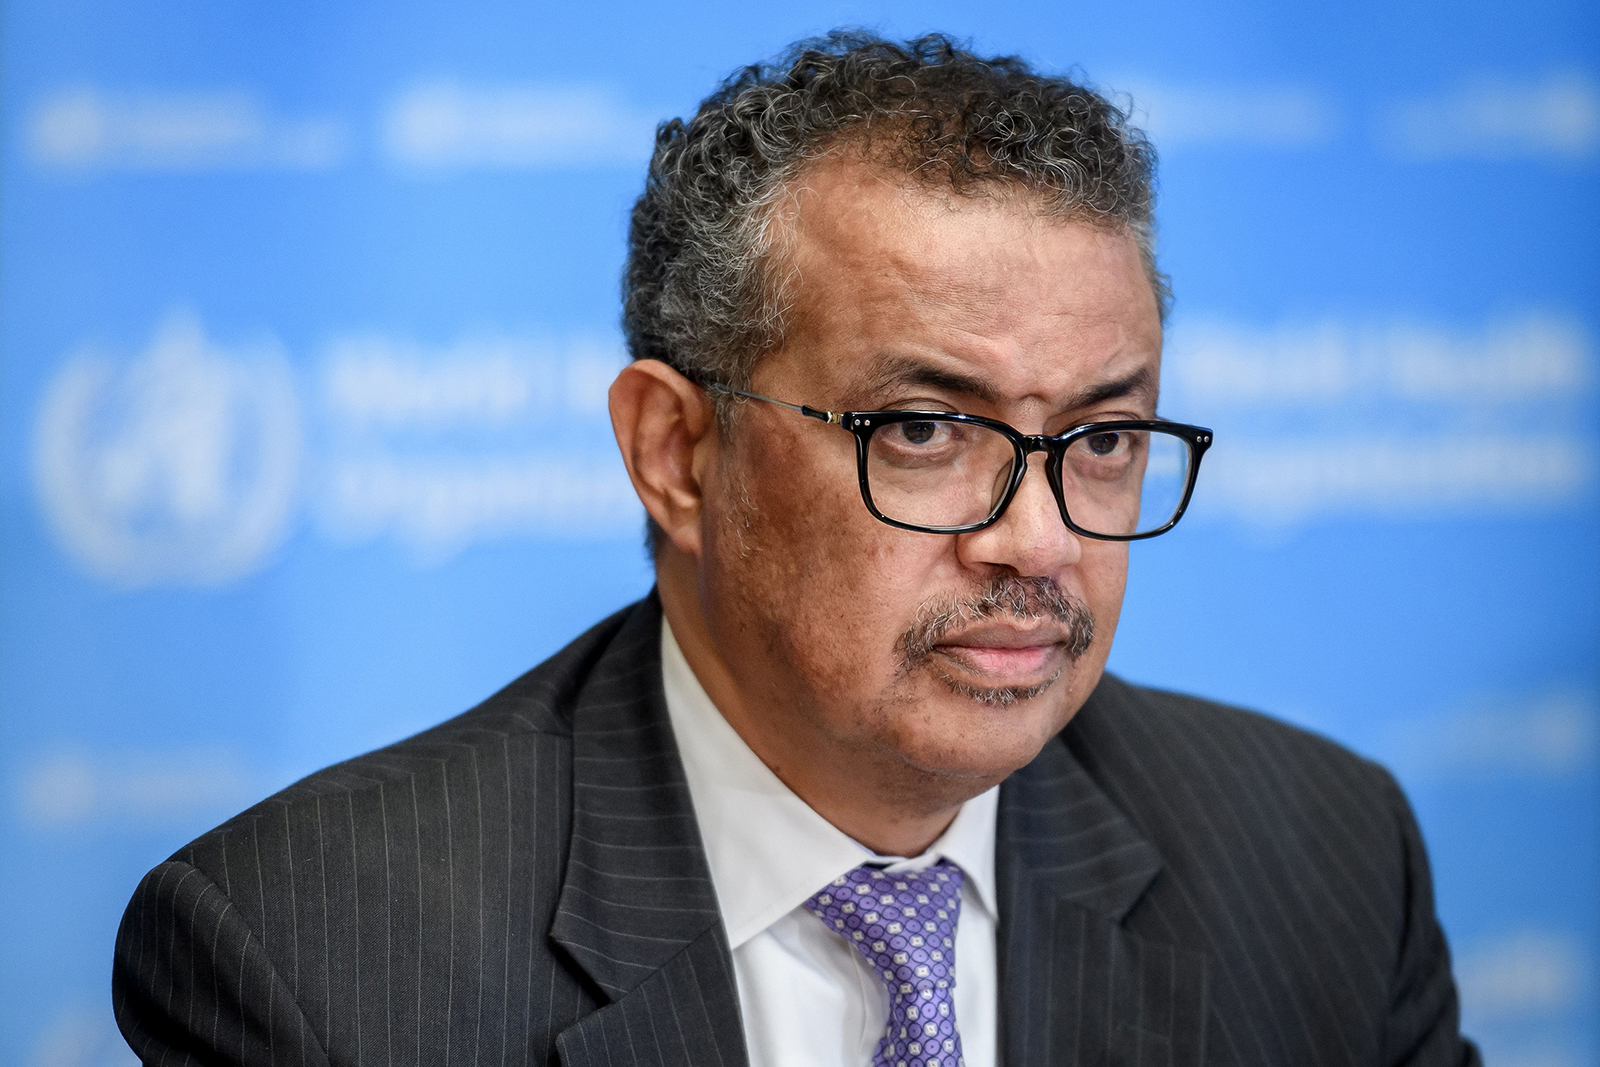 World Health Organization (WHO) Director-General Tedros Adhanom Ghebreyesus attends a daily press briefing on Covid-19 at the WHO headquarters in Geneva, Switzerland, on March 9.